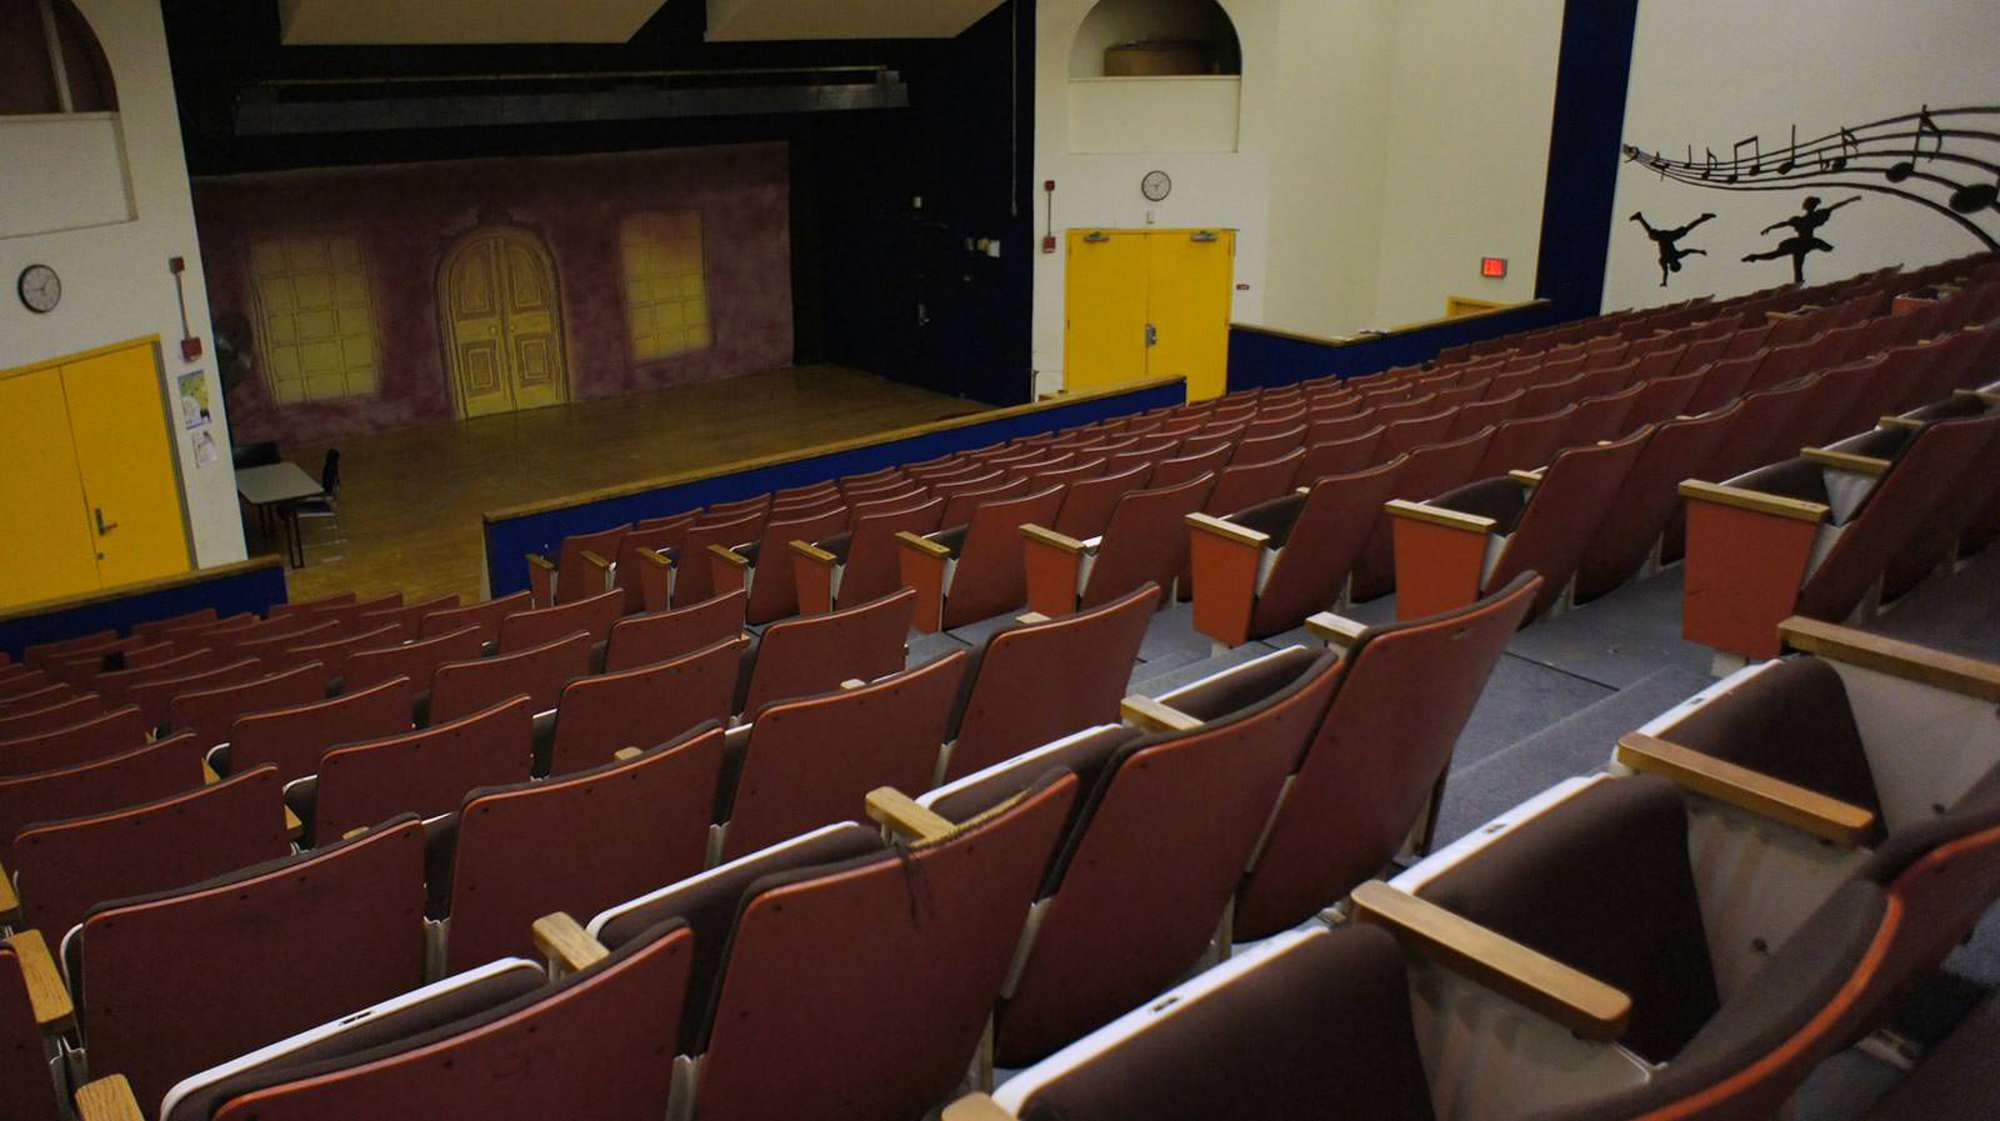 The Blackstone Community Center Auditorium